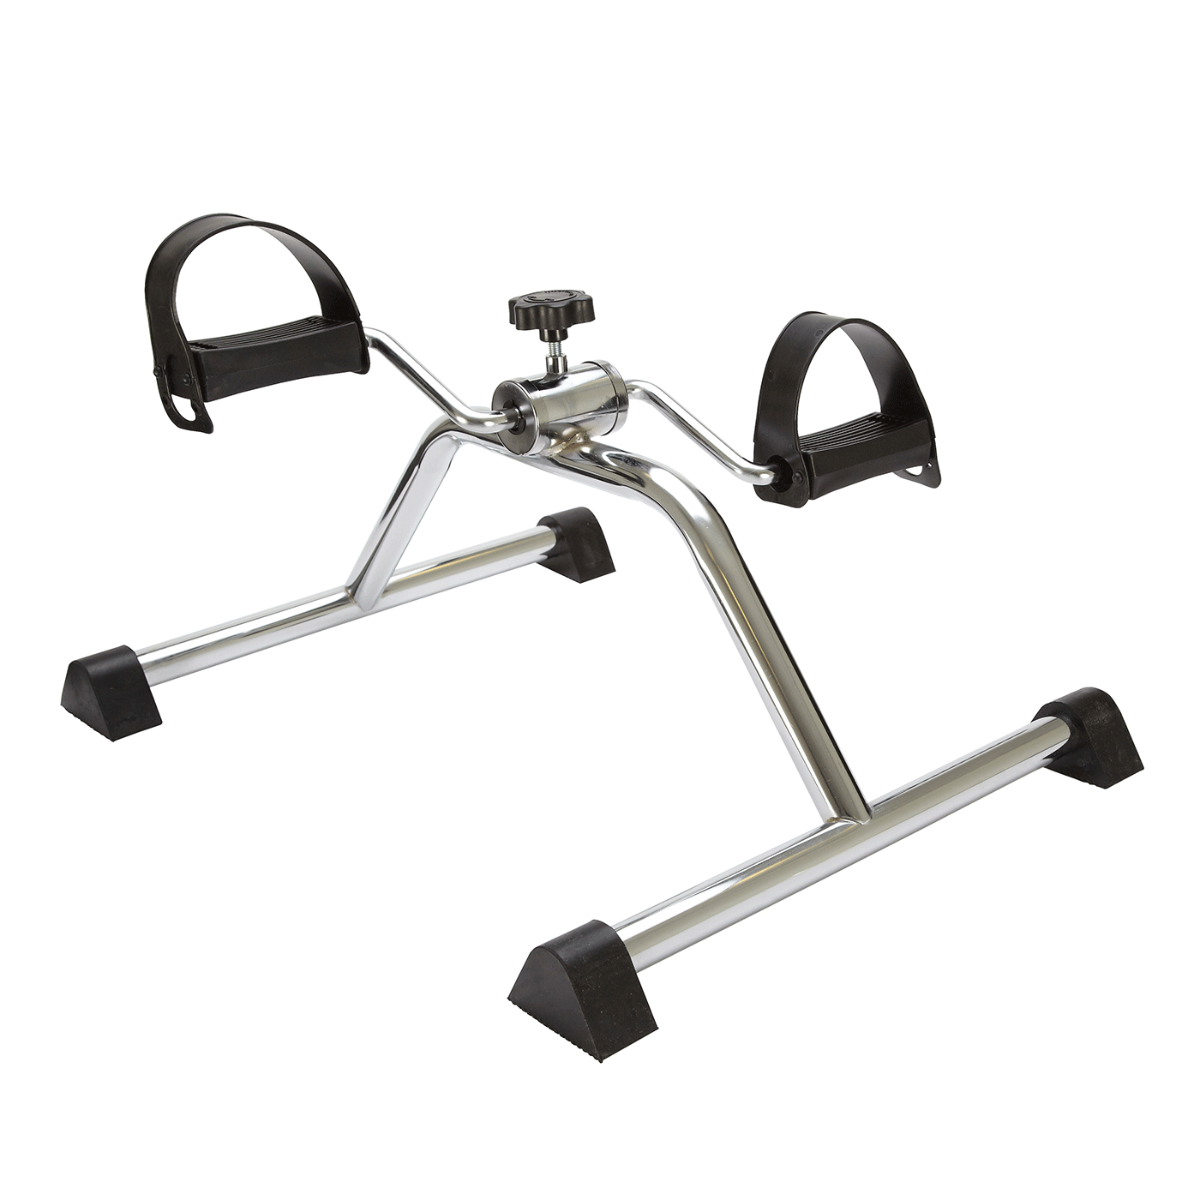 Pedal Exerciser image cover